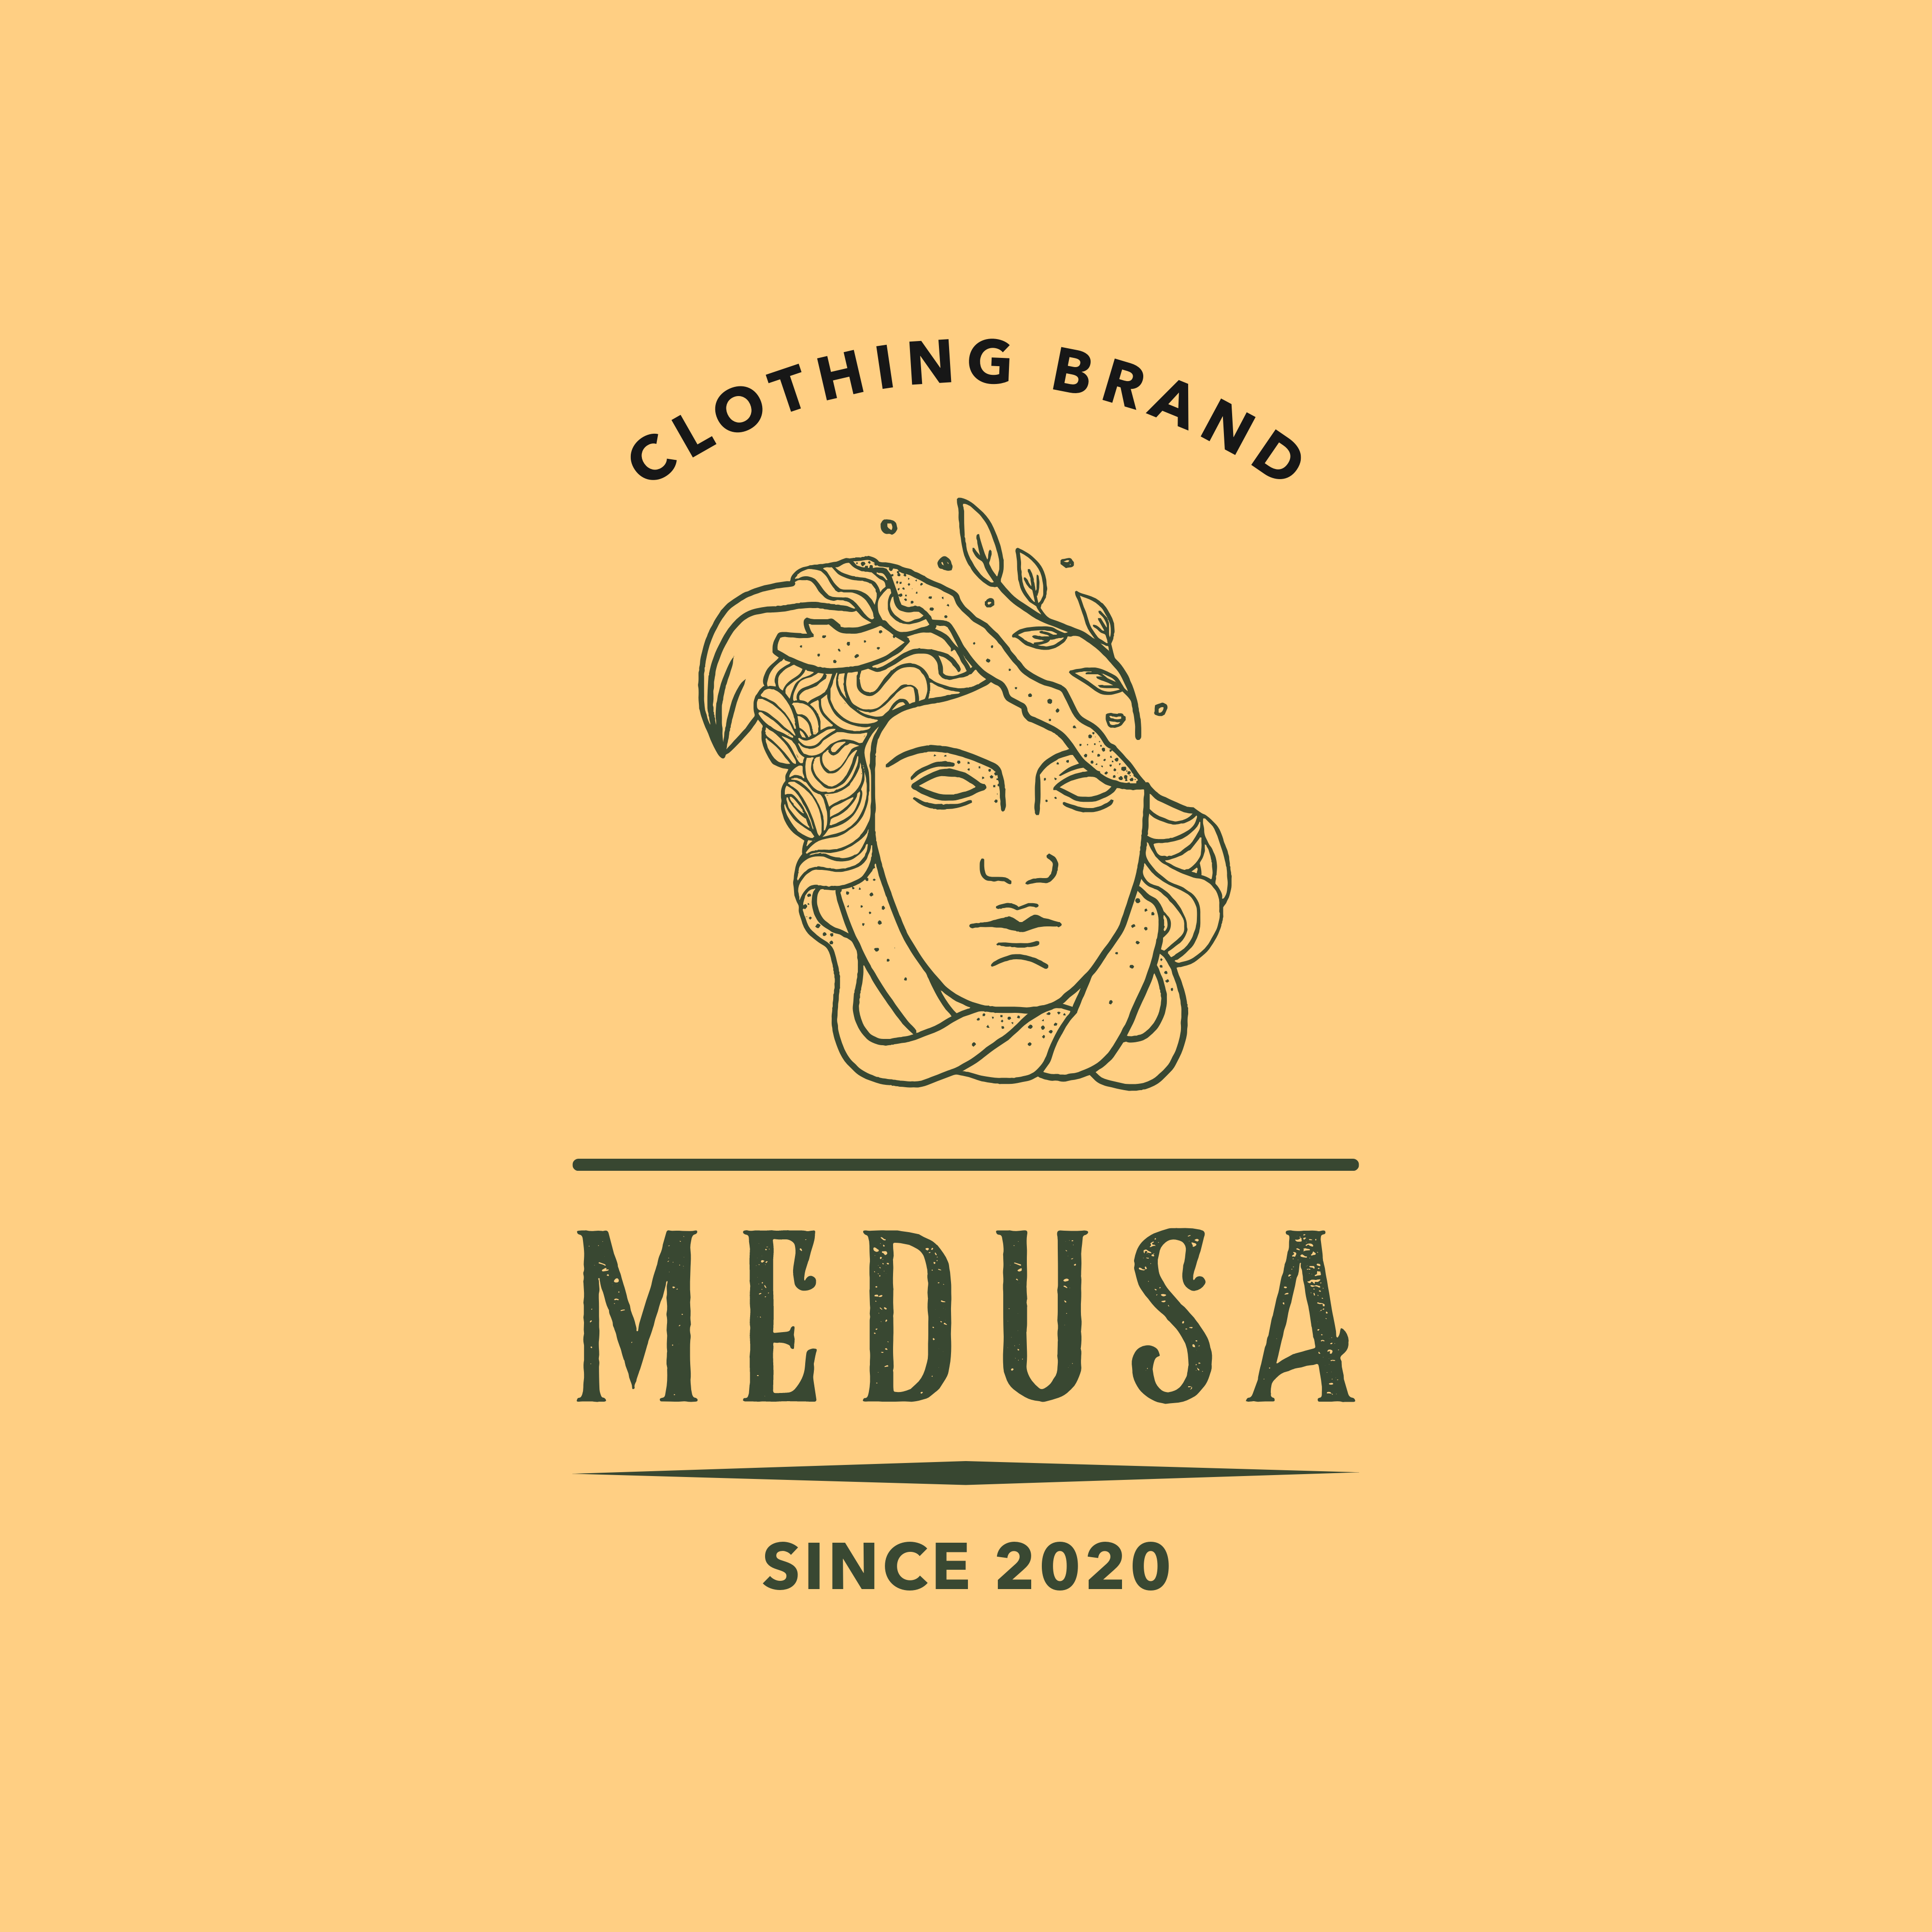 What do you think about this clothing brand logo?  #medusa #branding #ClothingBrand #Logodesign